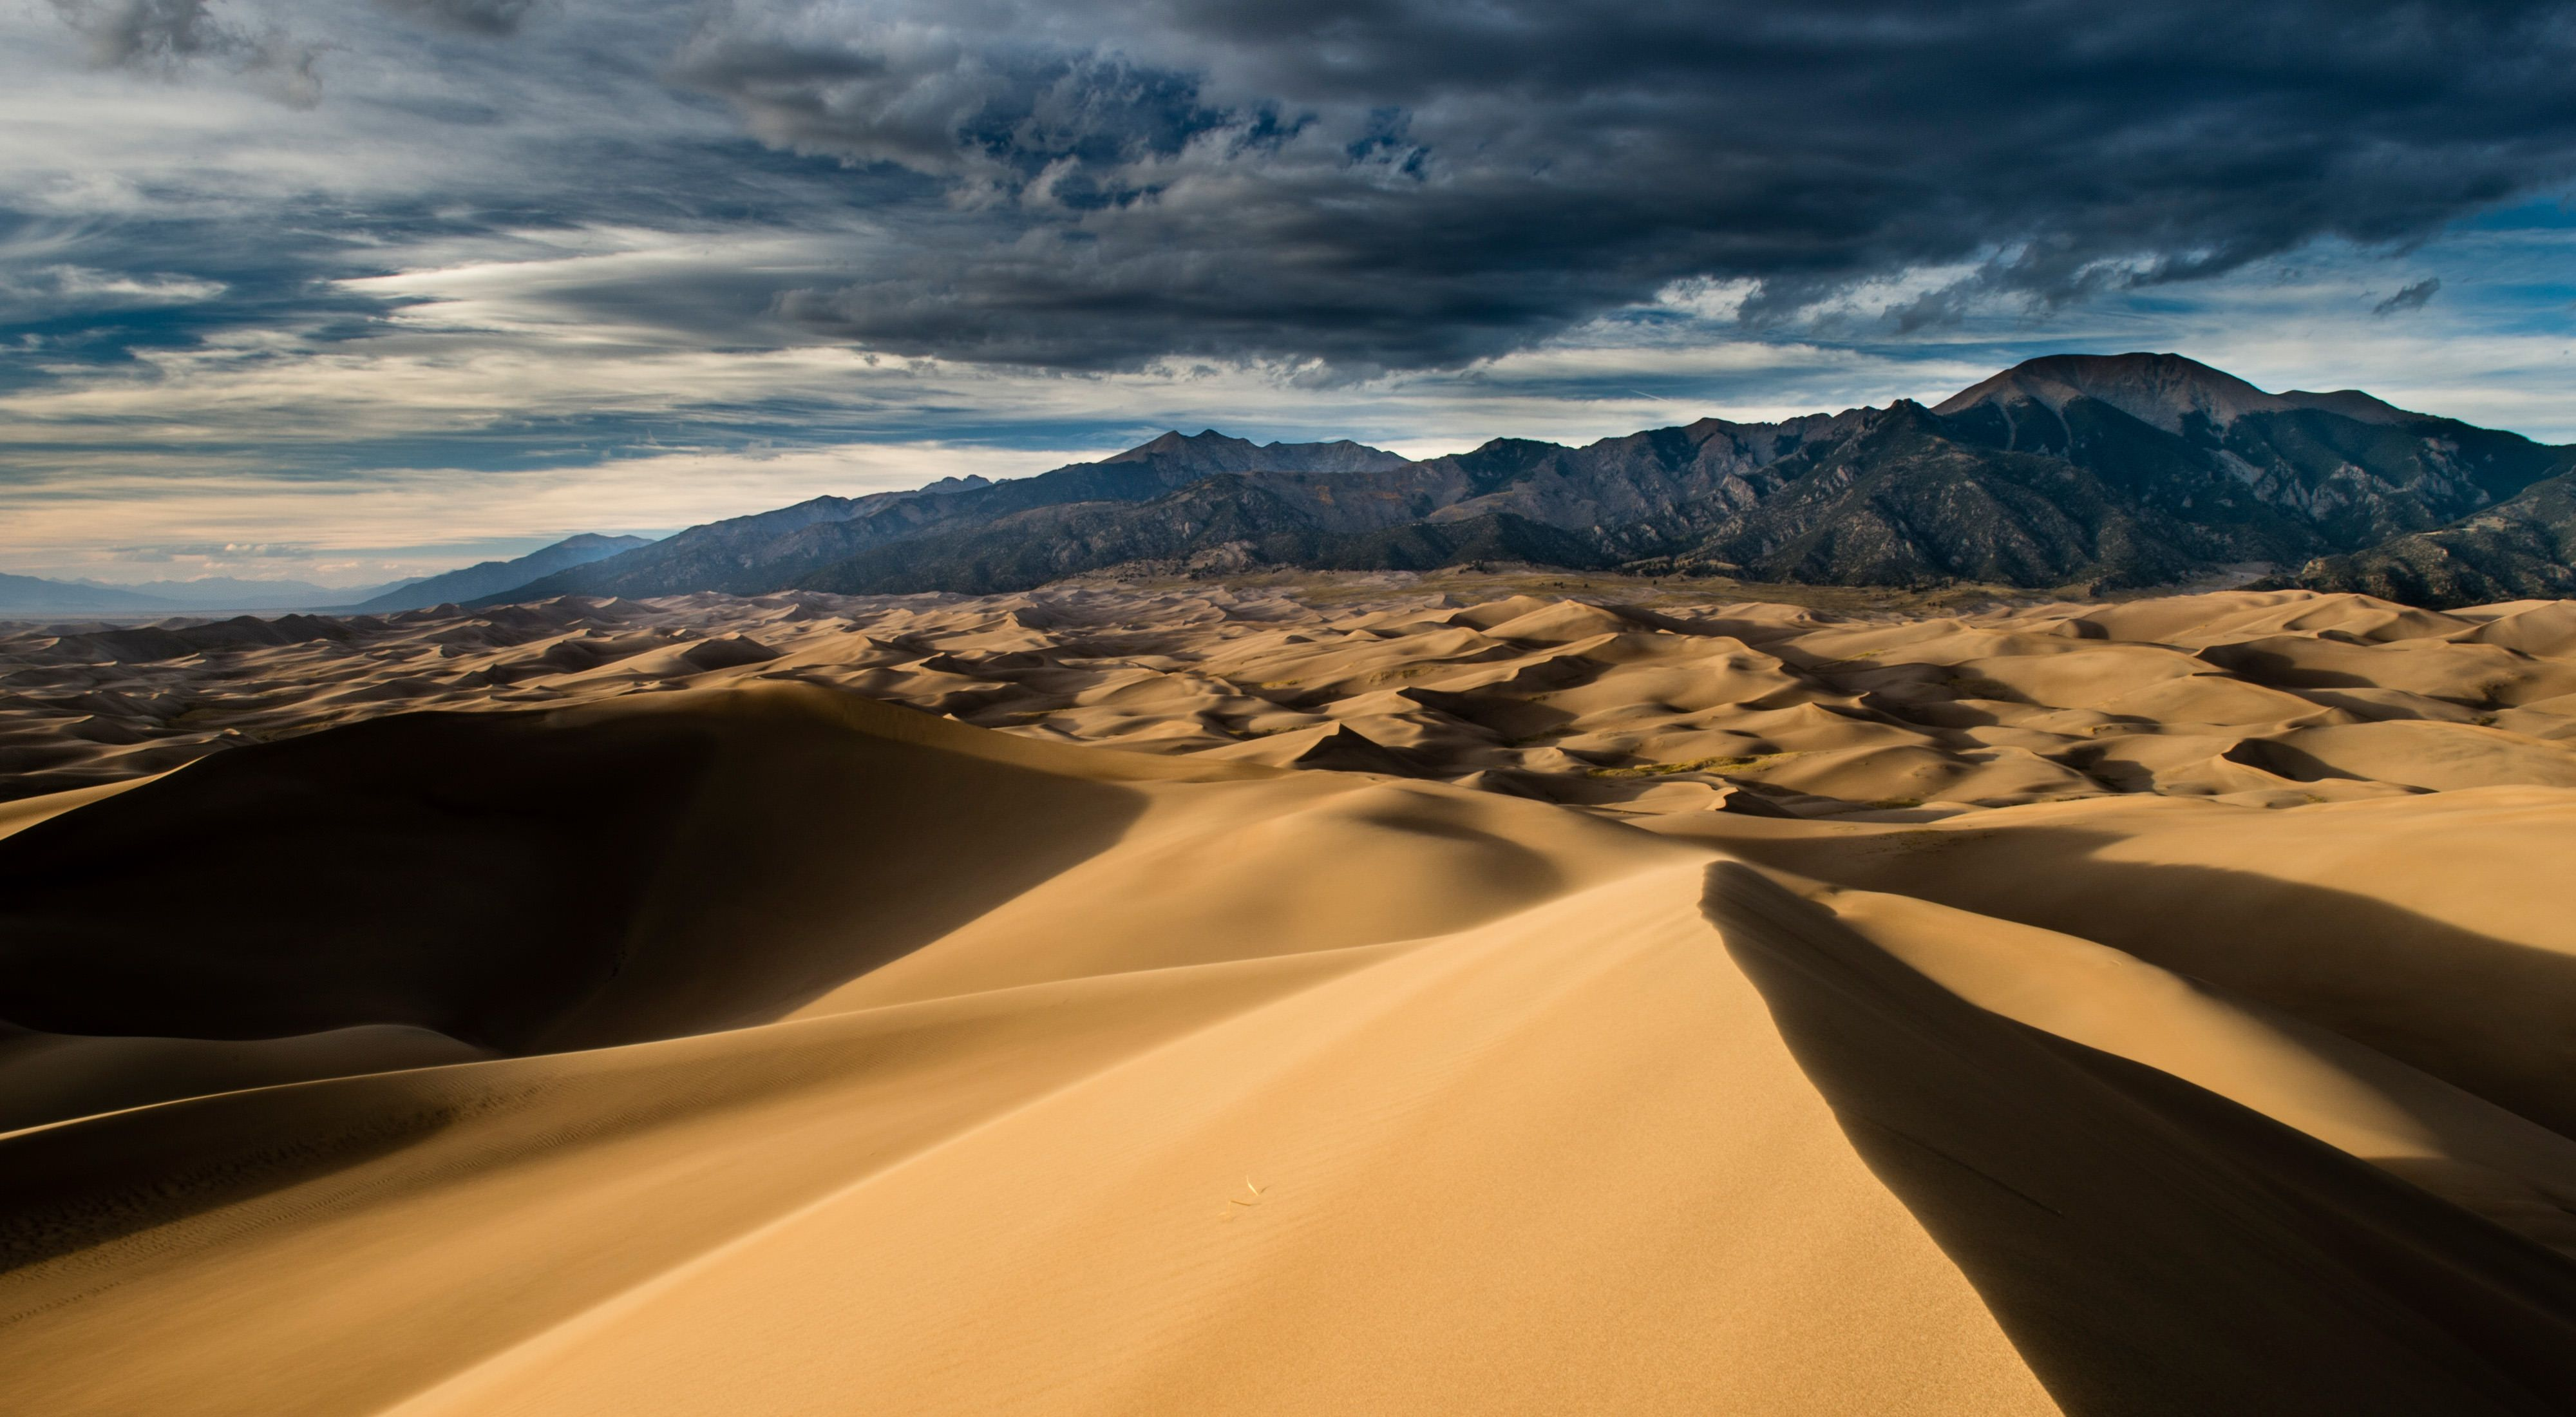 sand dunes with mountains in the background